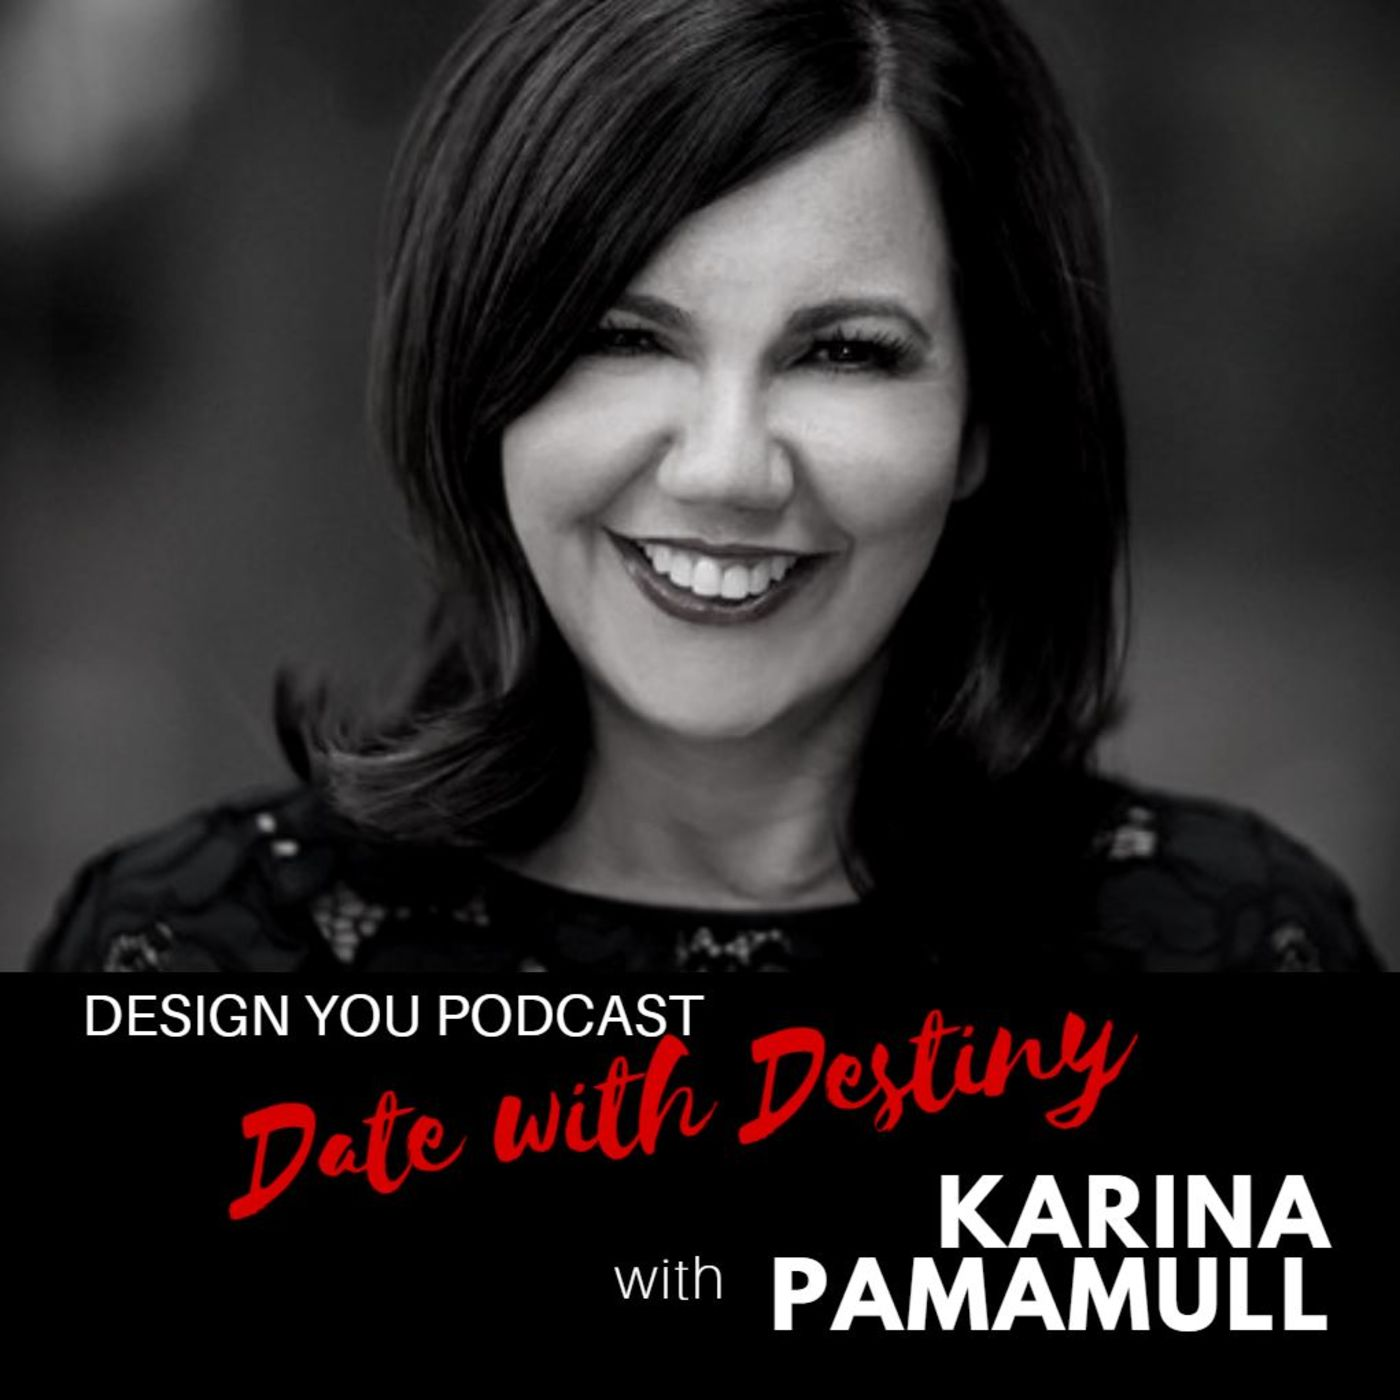 EP 047 – Date with Destiny with Karina Pamamull